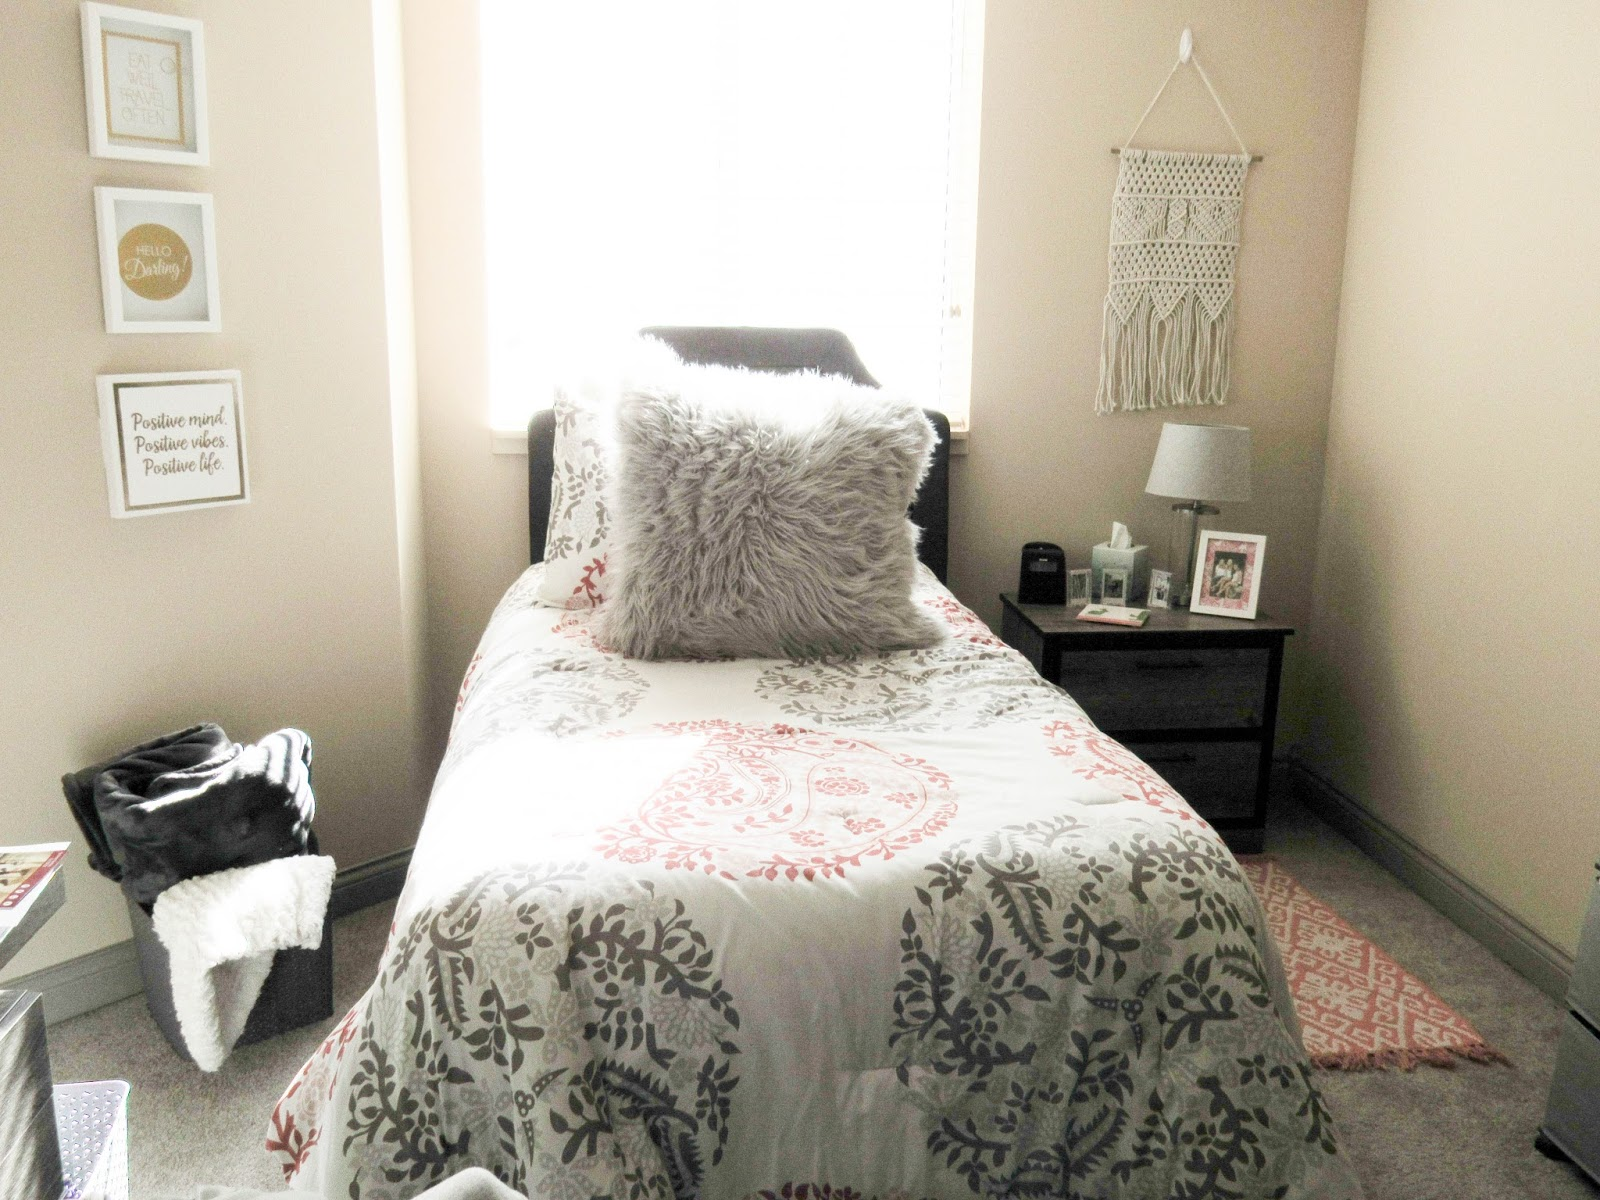 lovely attachment rhdrembrkrcom more bedding and magnificent comforters public bed furniture maxx tj wonderful